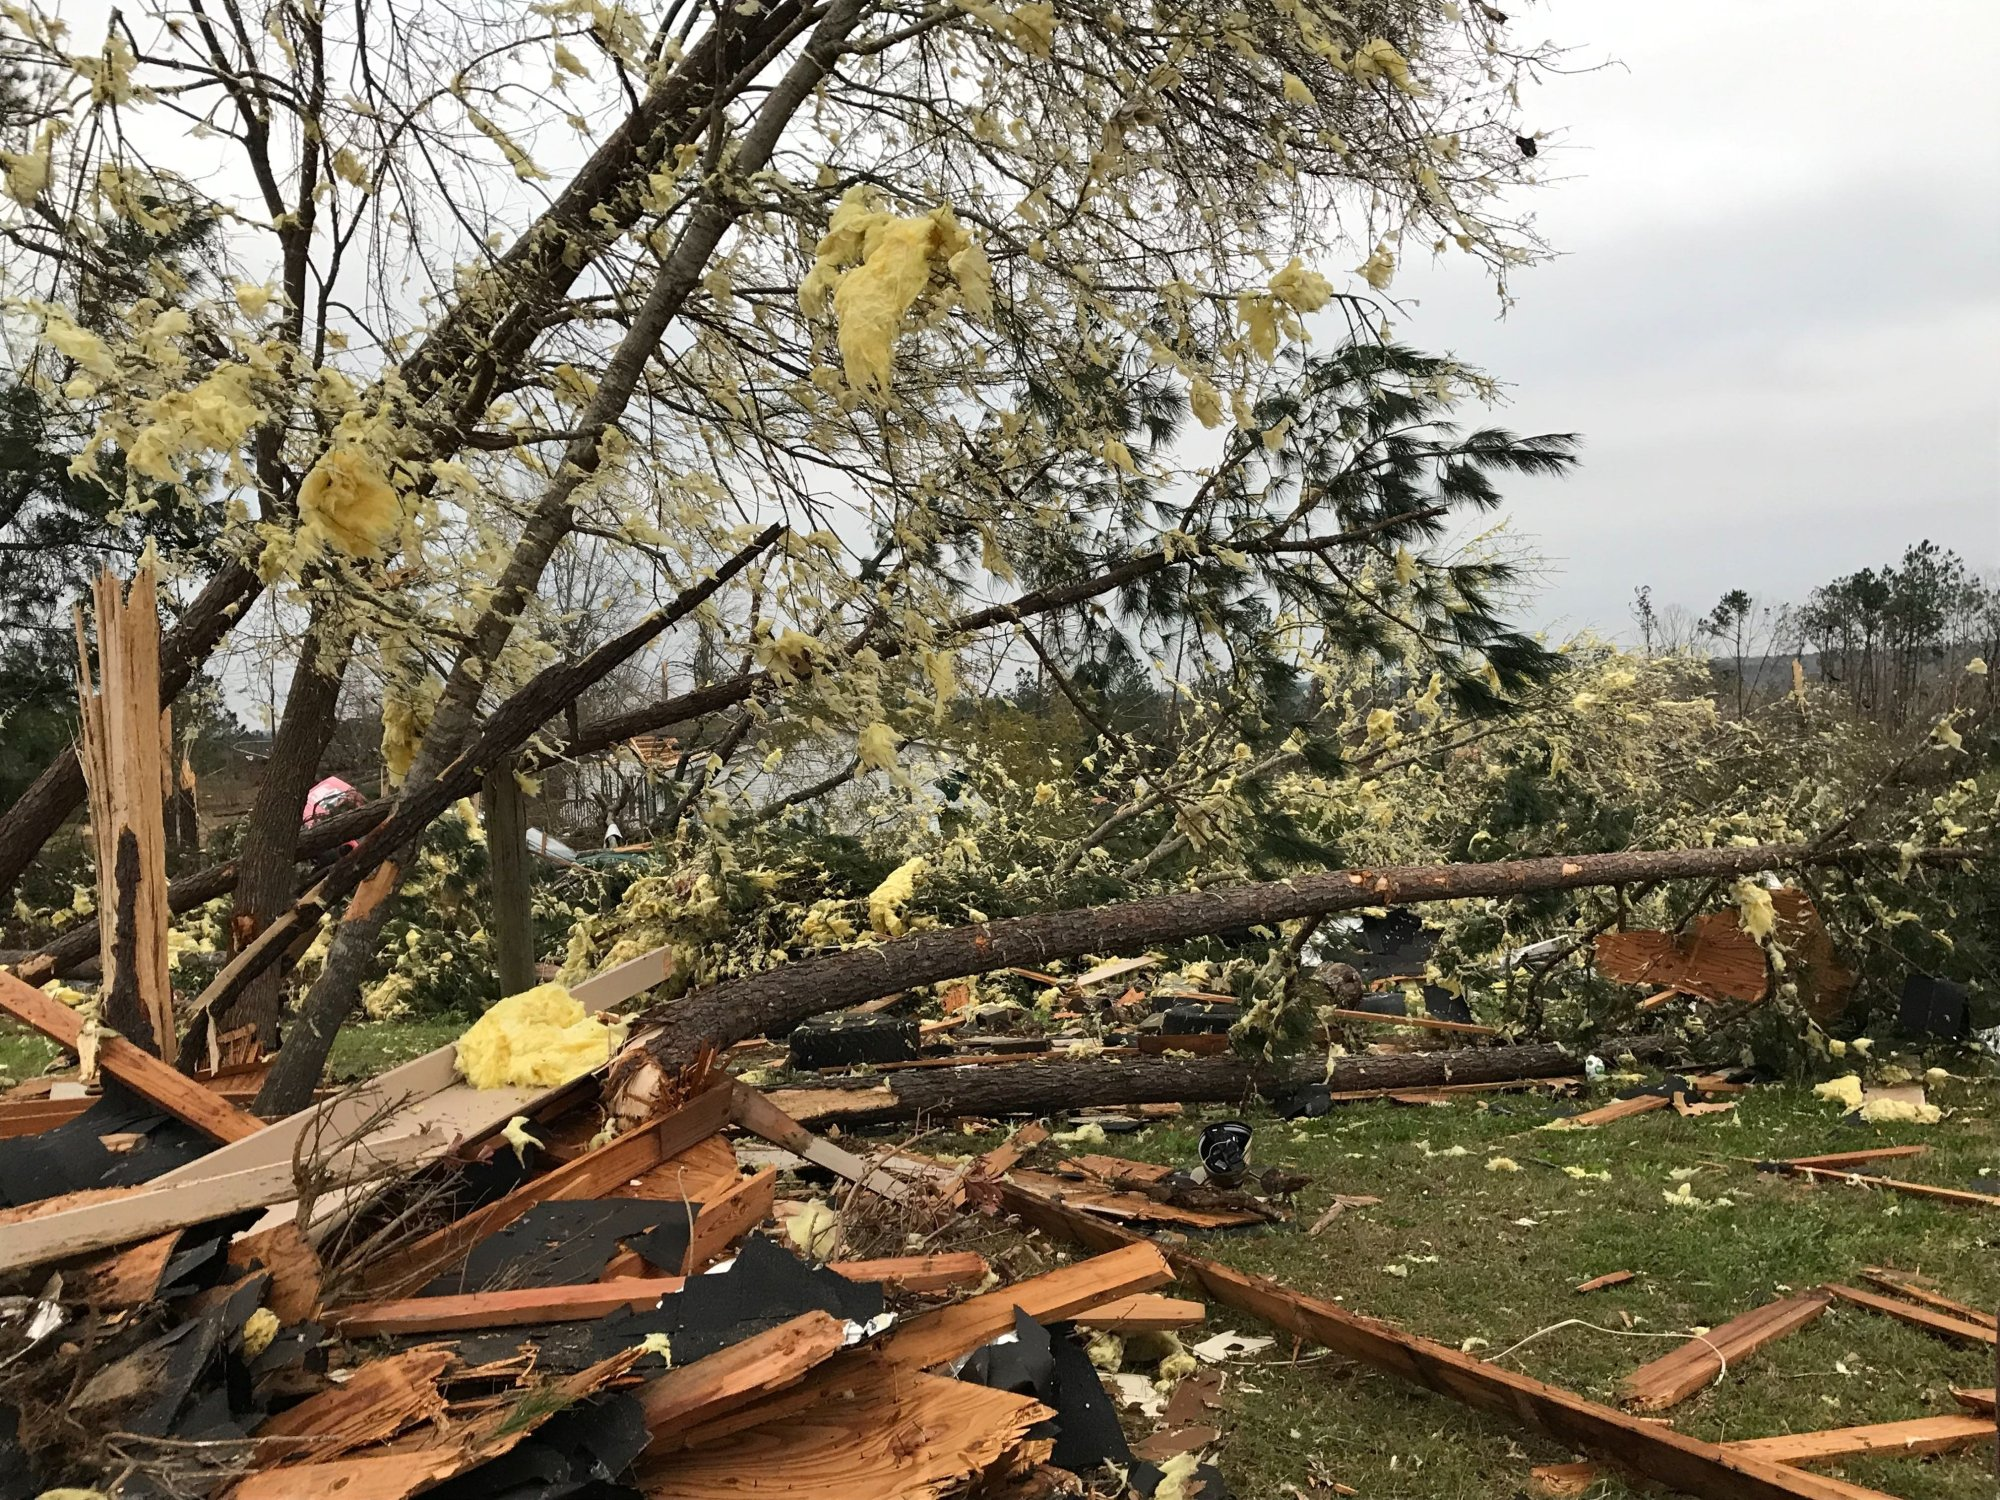 A warning for a second tornado was issued at 3:38 p.m. ET, with the first reports of damage coming 13 minutes later.